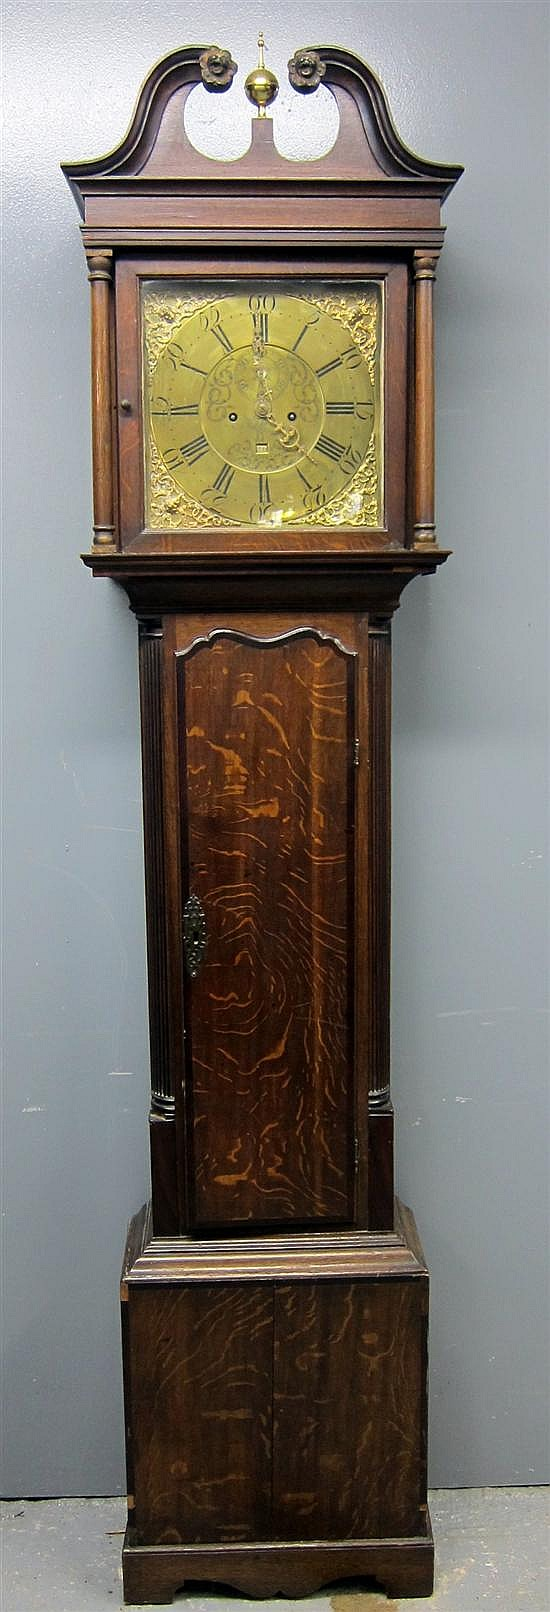 18th century oak long case clock by John Smith of Chester,